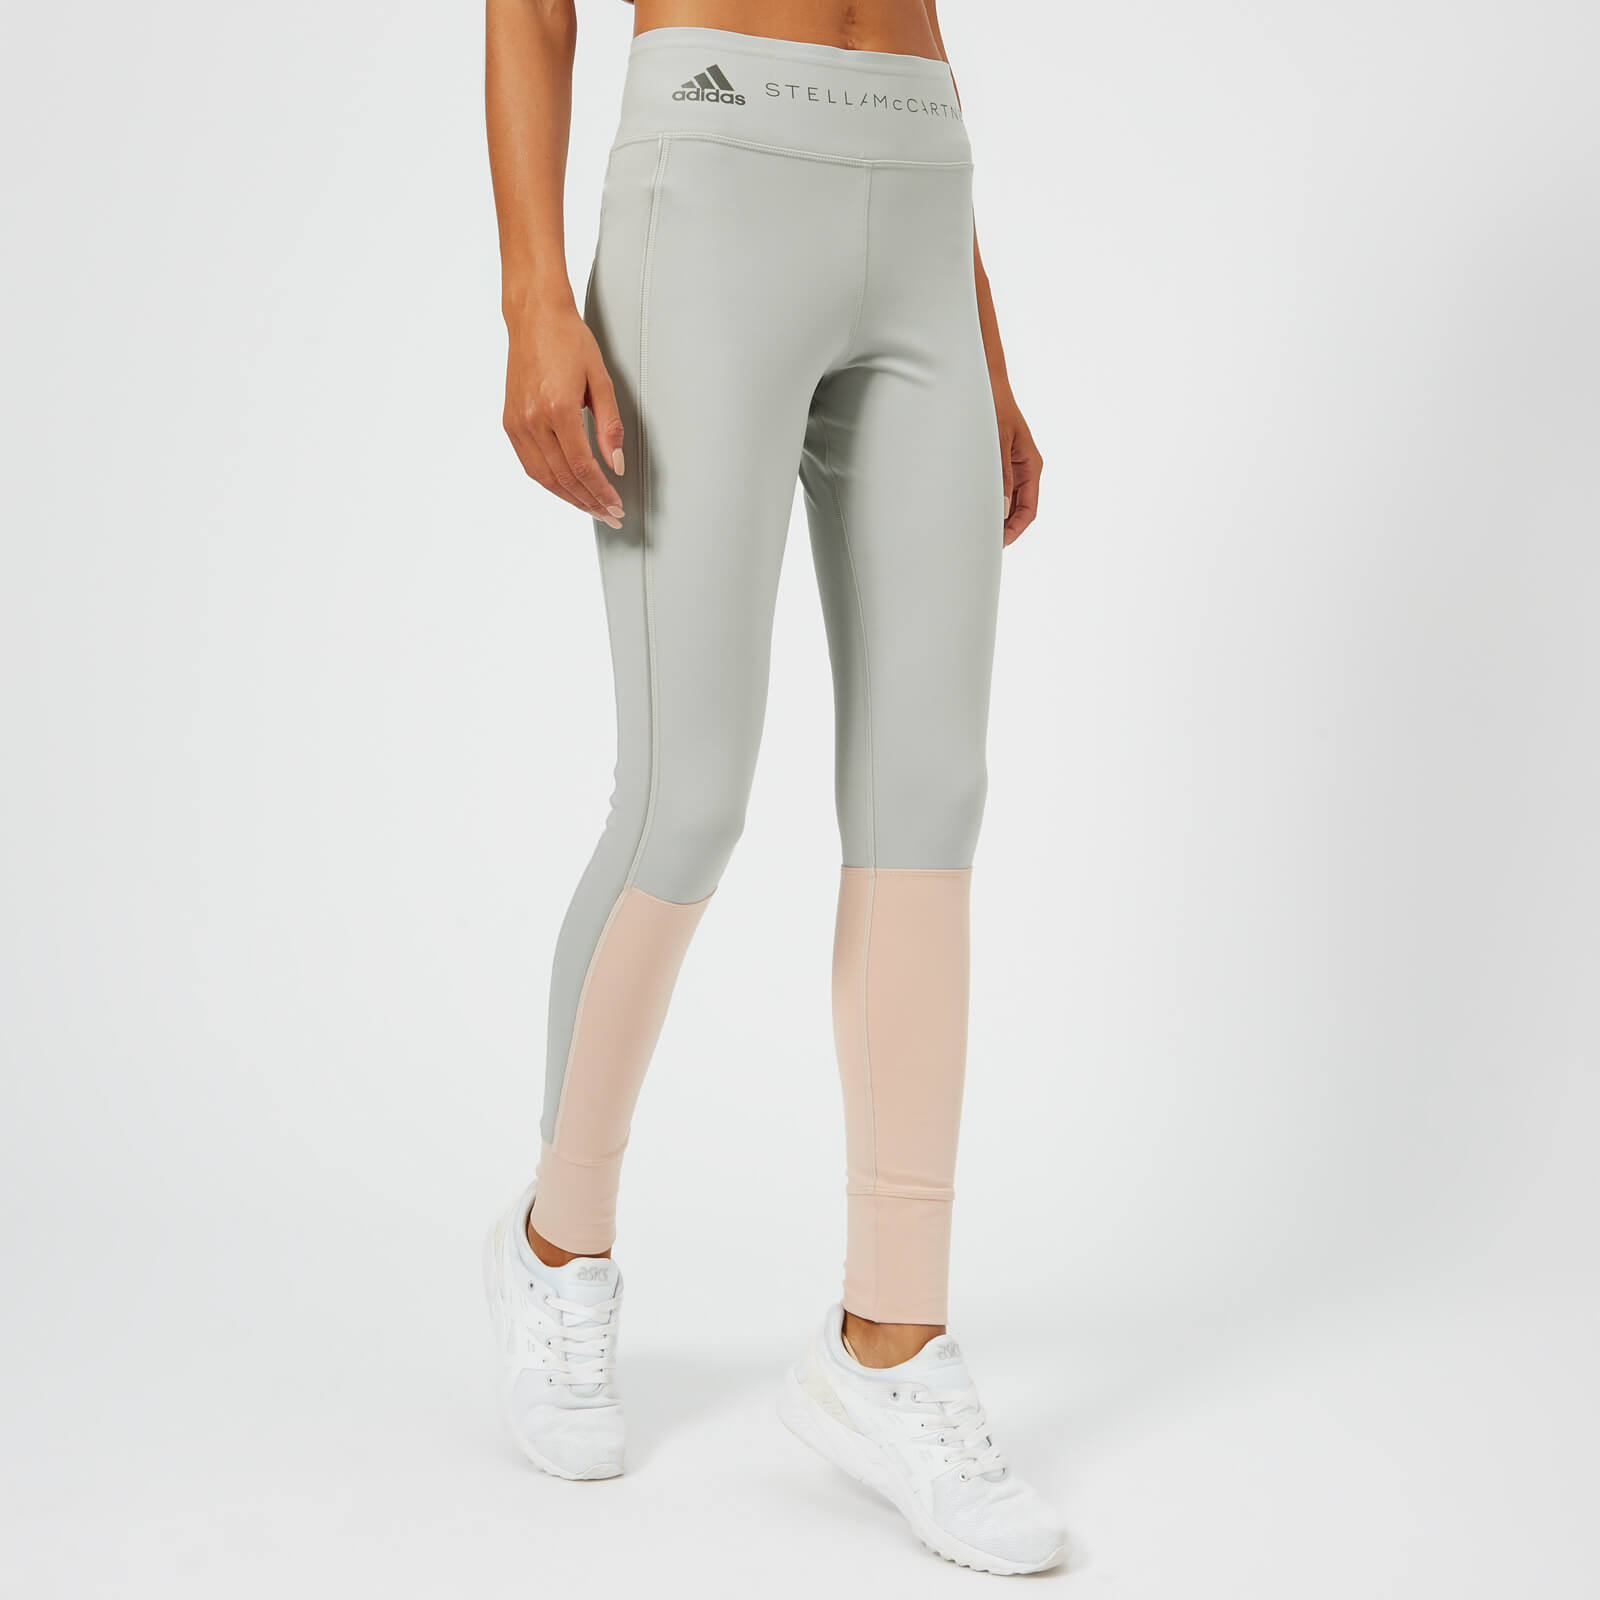 d8feb68fe0ea6 adidas by Stella McCartney Women's Yoga Comfort Tights - Pearl Rose/Stone -  Free UK Delivery over £50